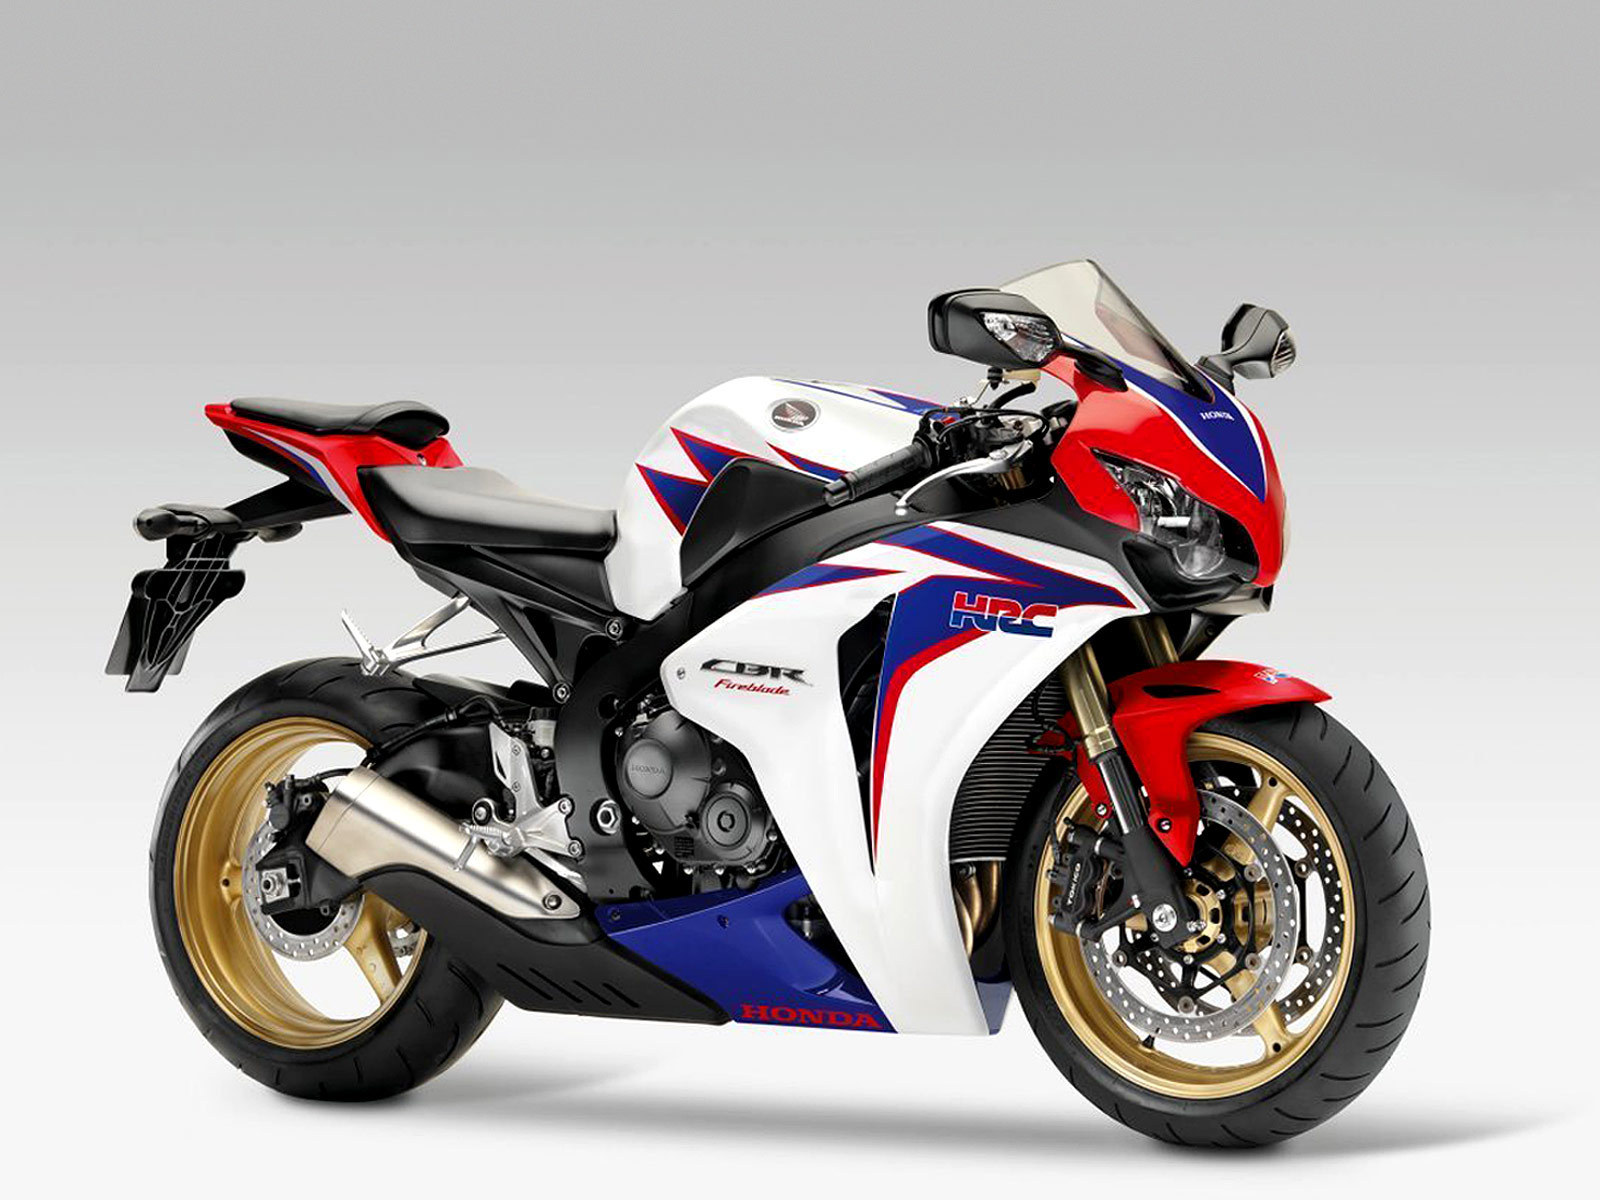 Honda Cbr 1000rr C Motorcycles Wallpaper 14487354 Fanpop